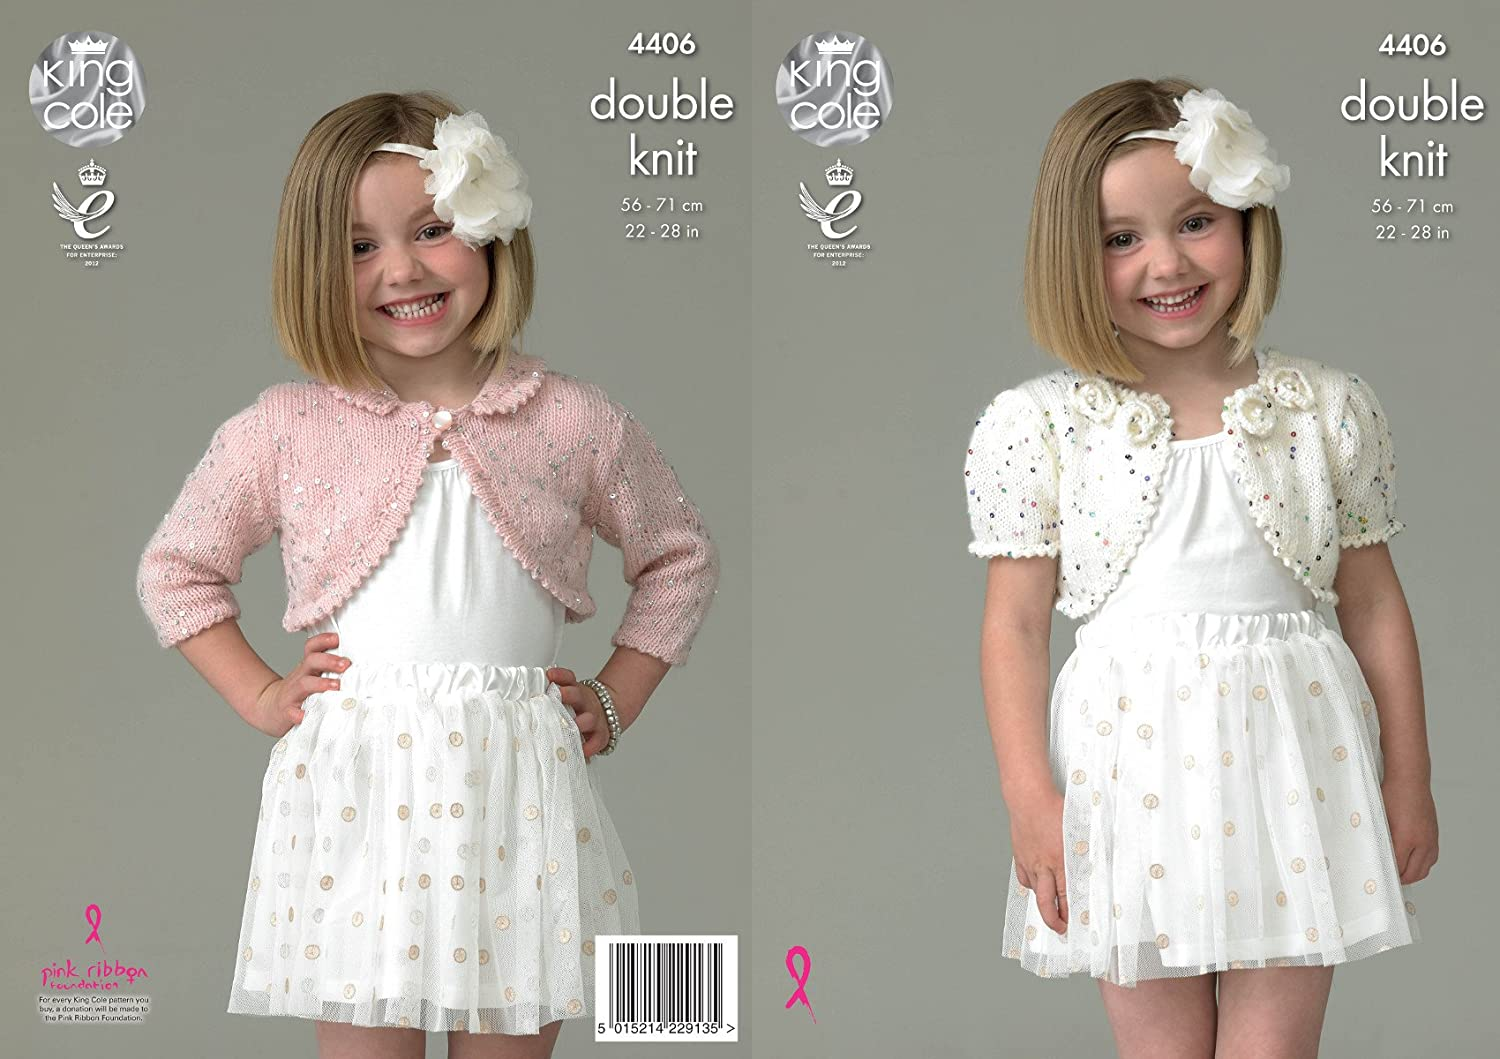 King Cole Galaxy Double Knitting Pattern Childrens Girls Boleros with Flower Detail or Collar (4406)